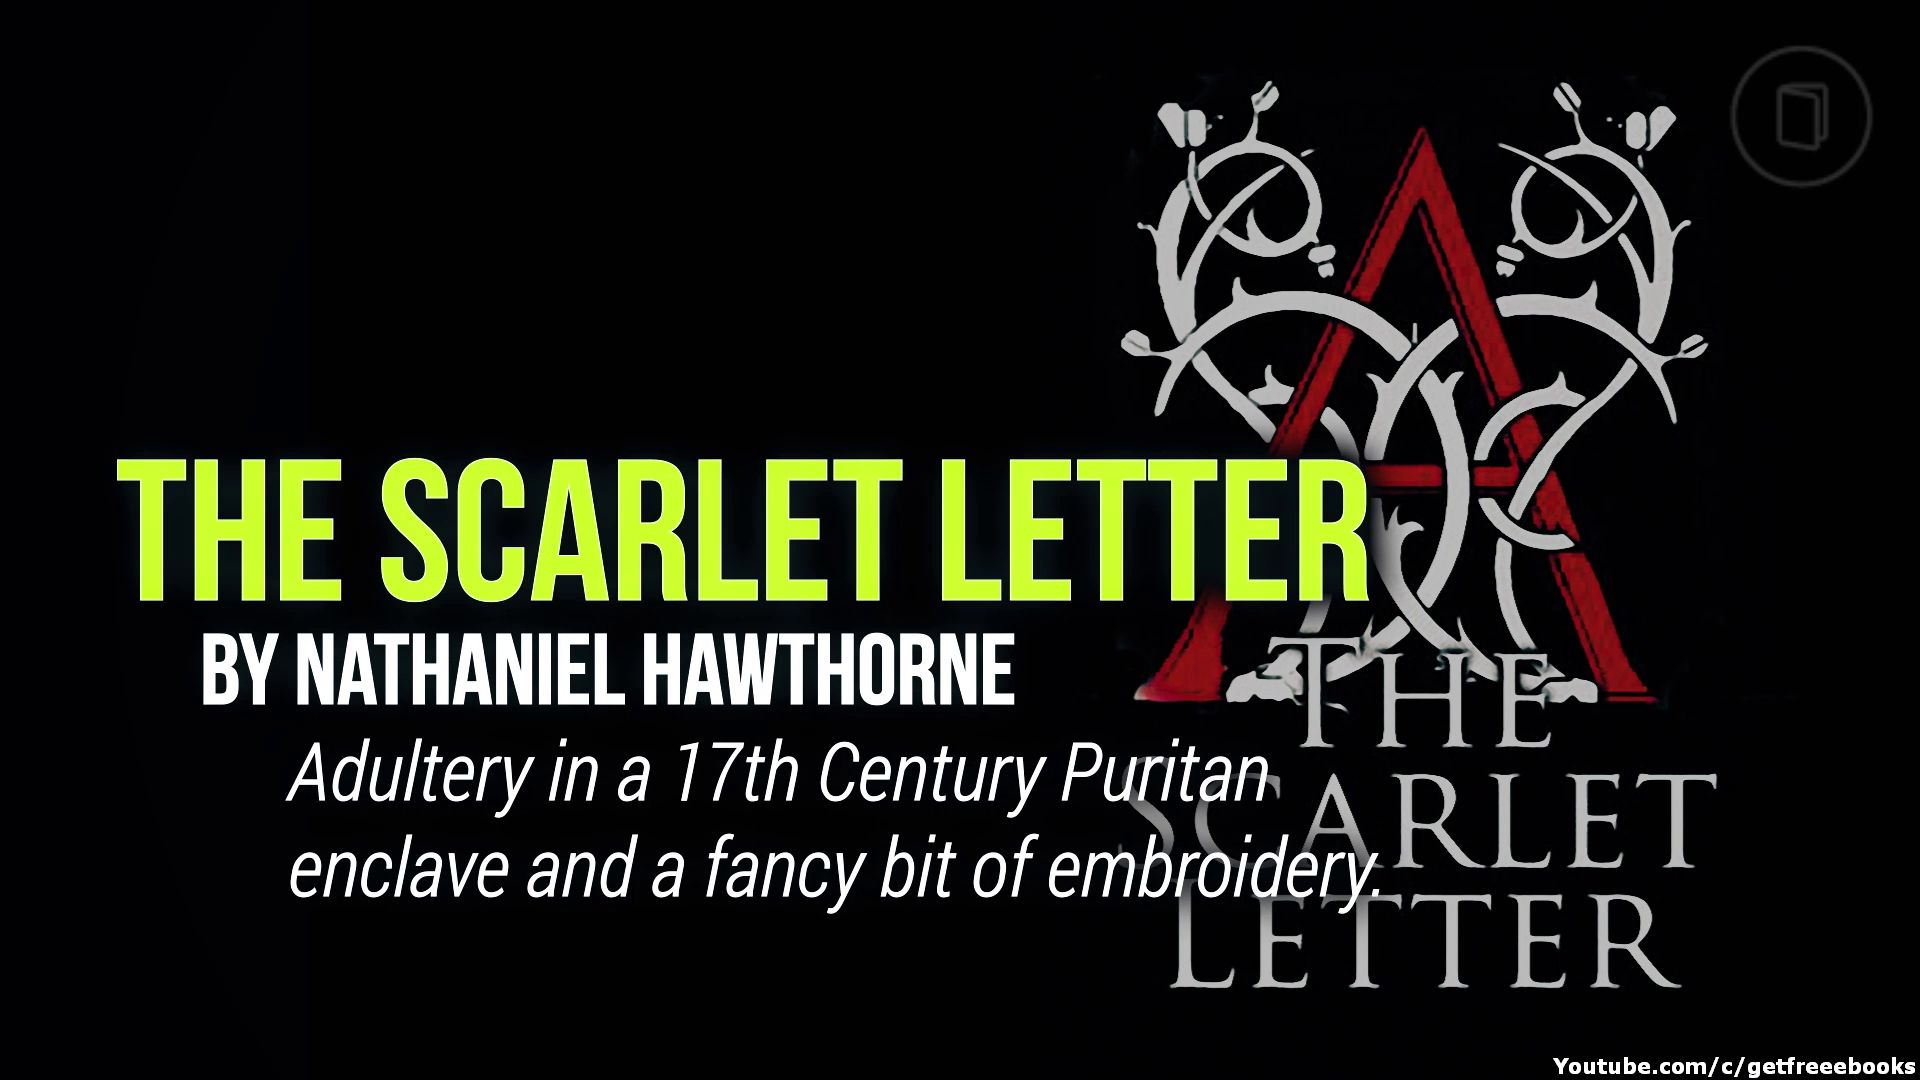 The Scarlet Letter by Nathaniel Hawthorne Book summaries